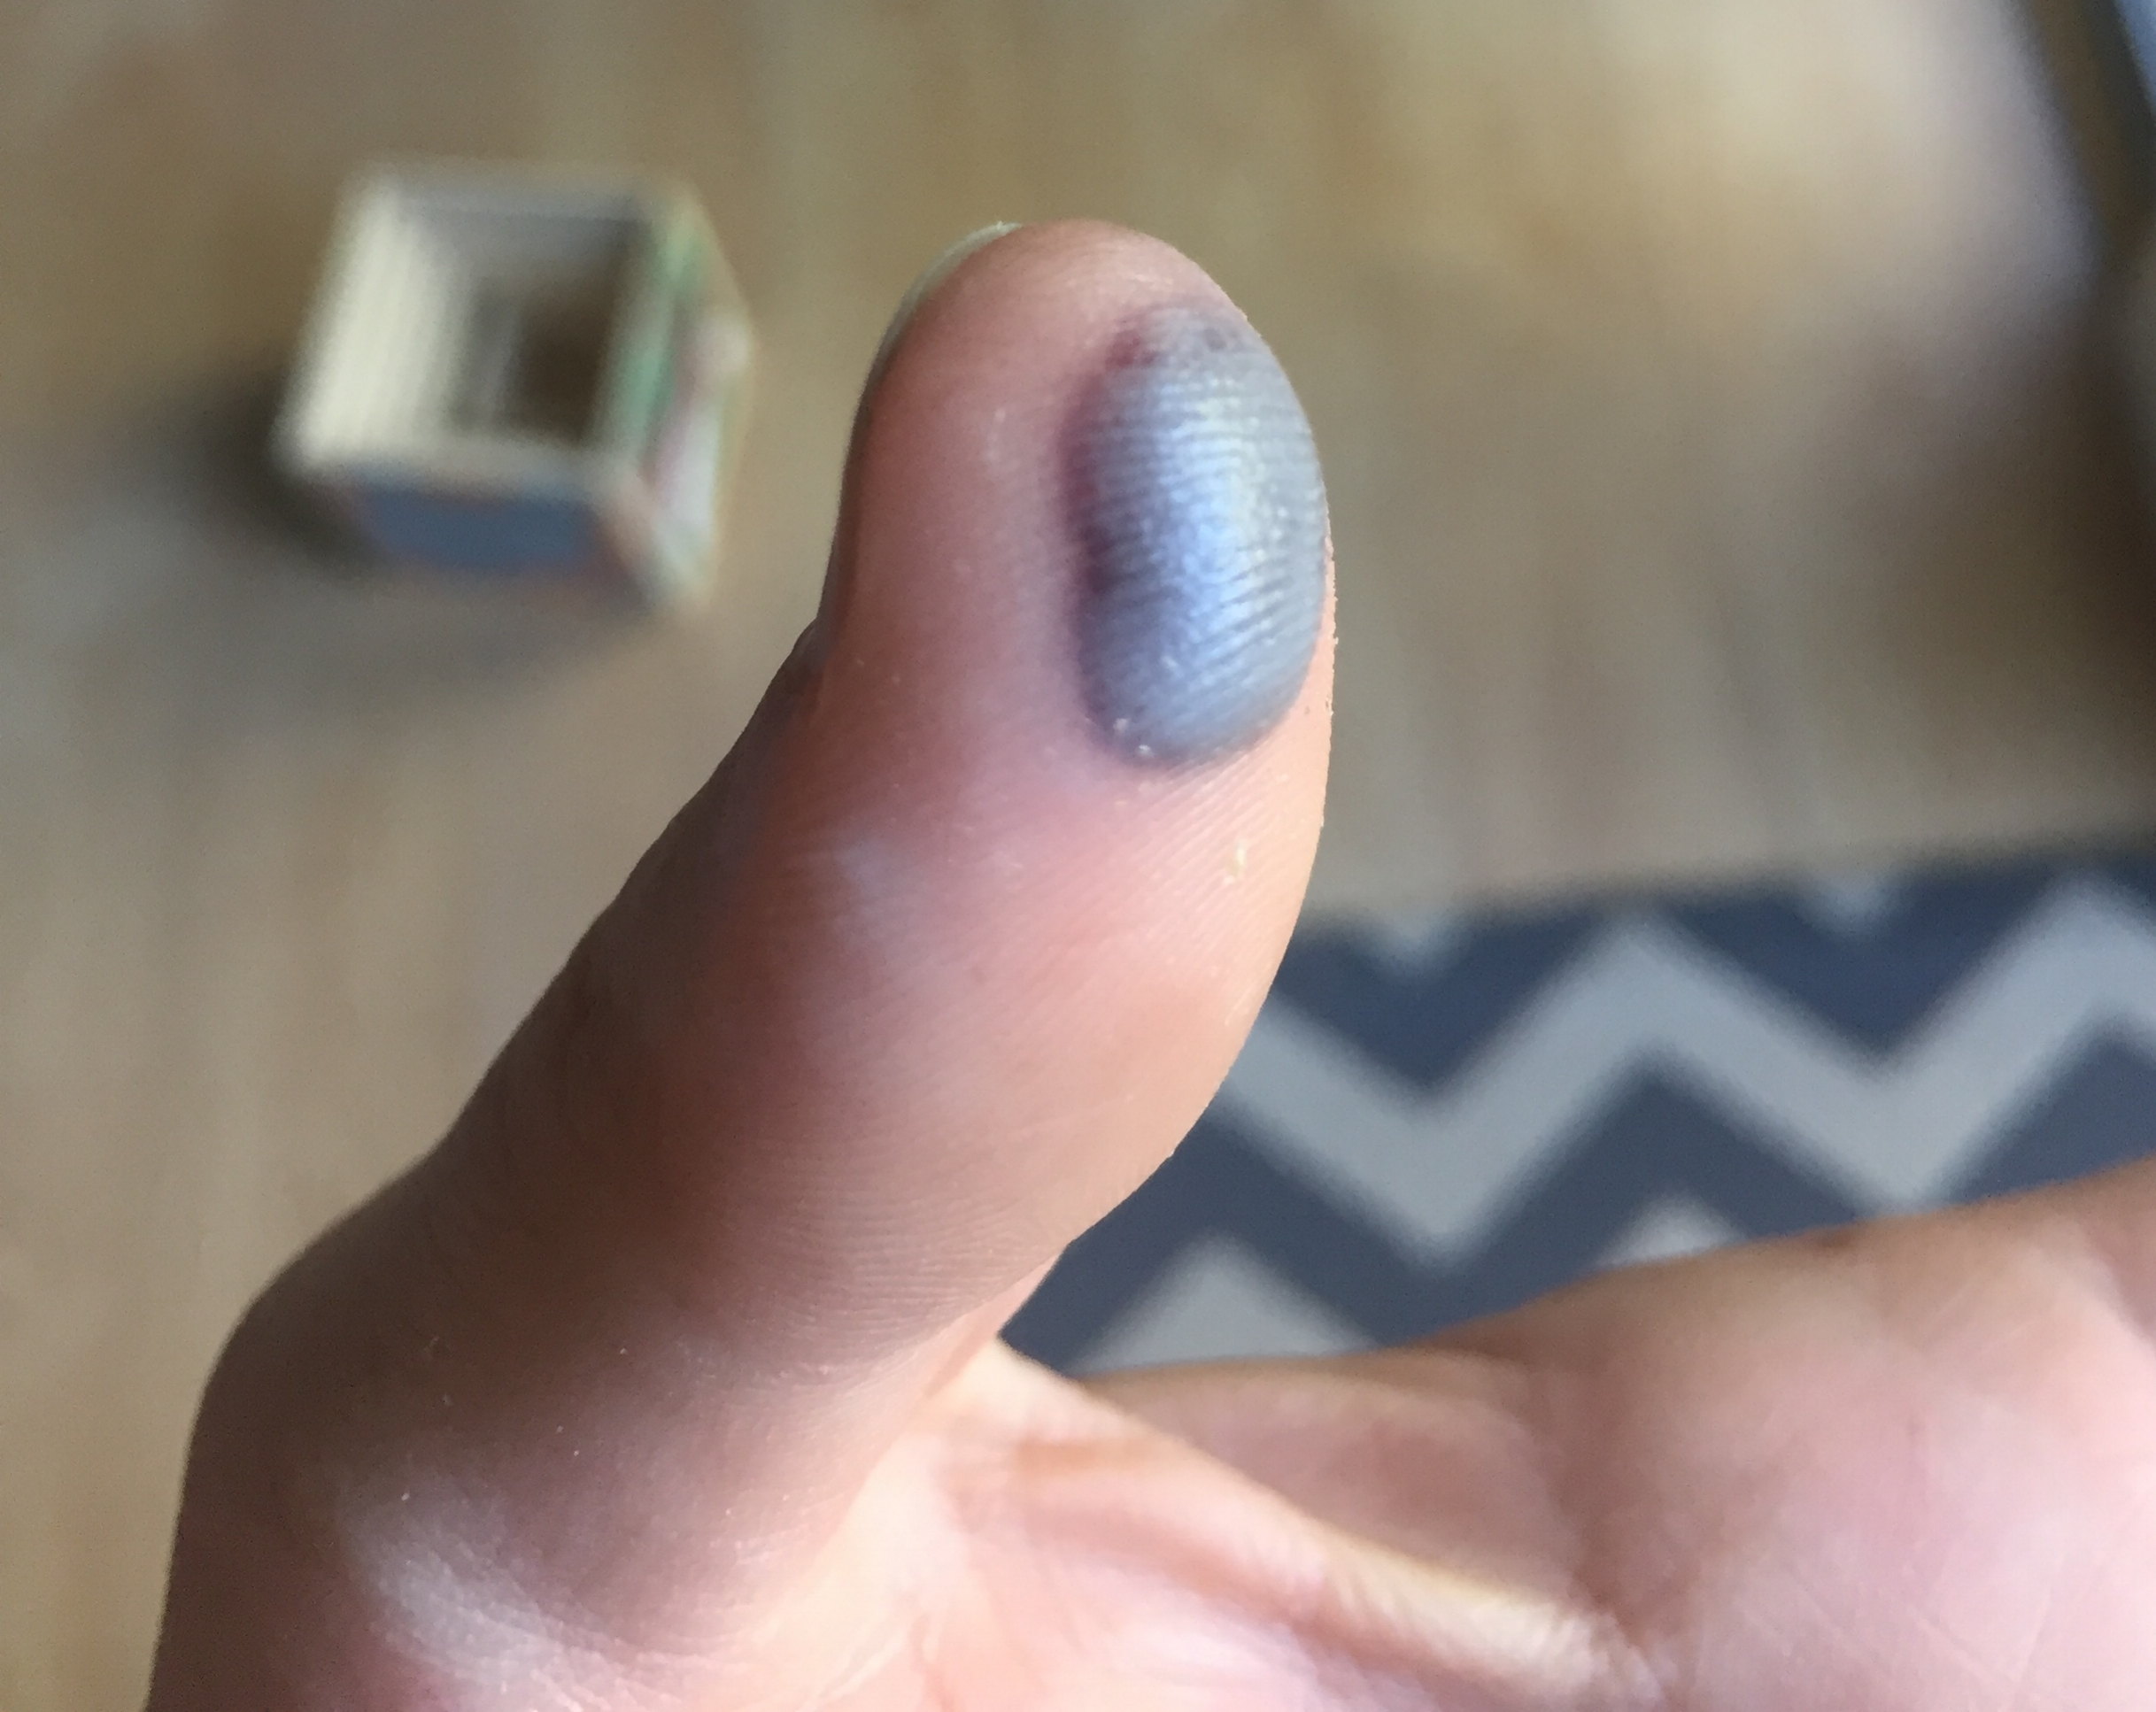 Public Service Announcement: - INVEST IN A NAIL GUN.Thankfully I did not lose my thumbnail. It was just gross and very painful. Not cool.